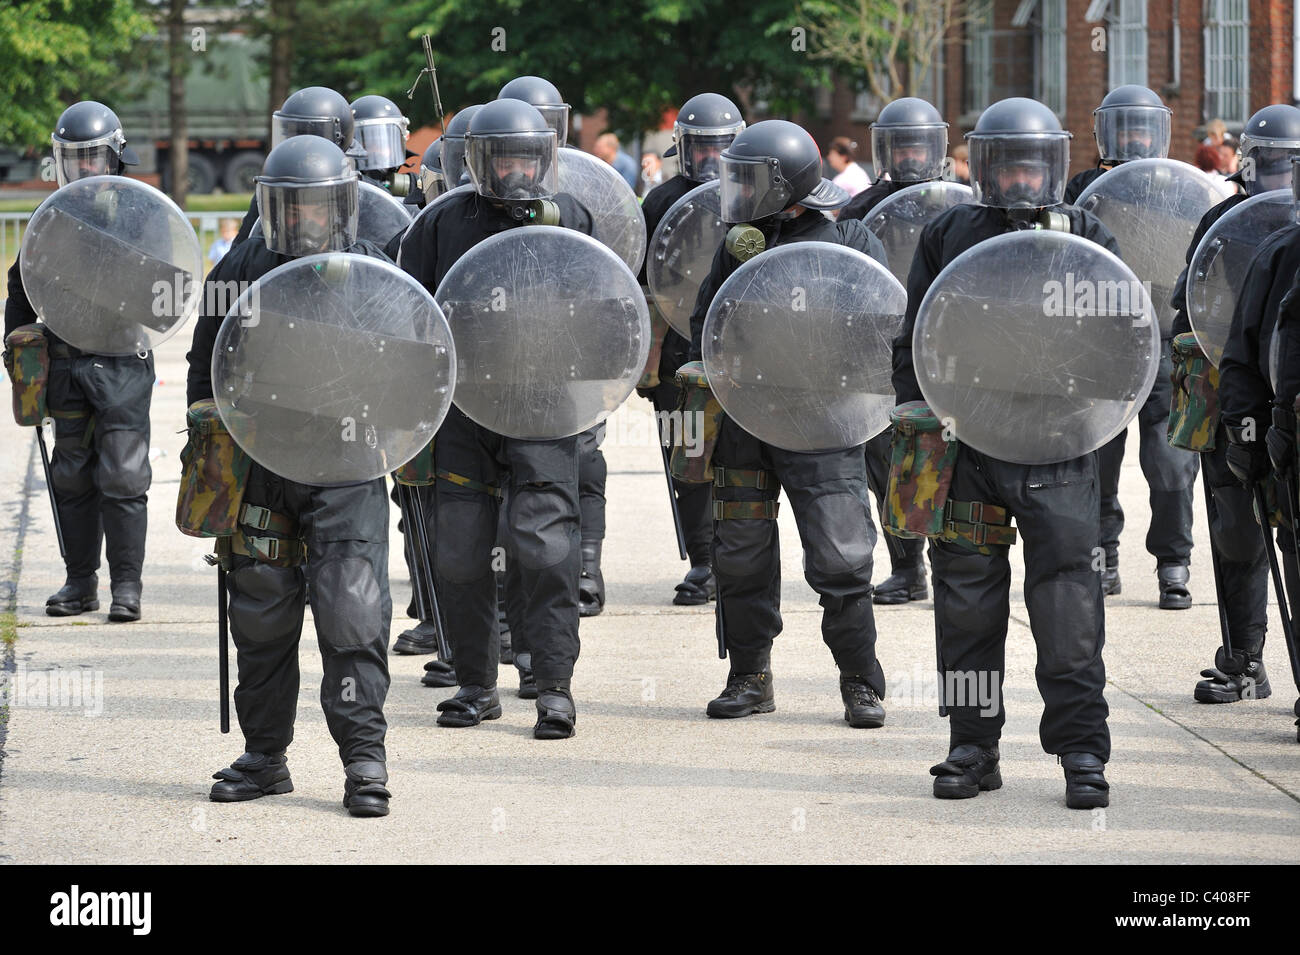 Riot squad police officers forming a protective barrier ...